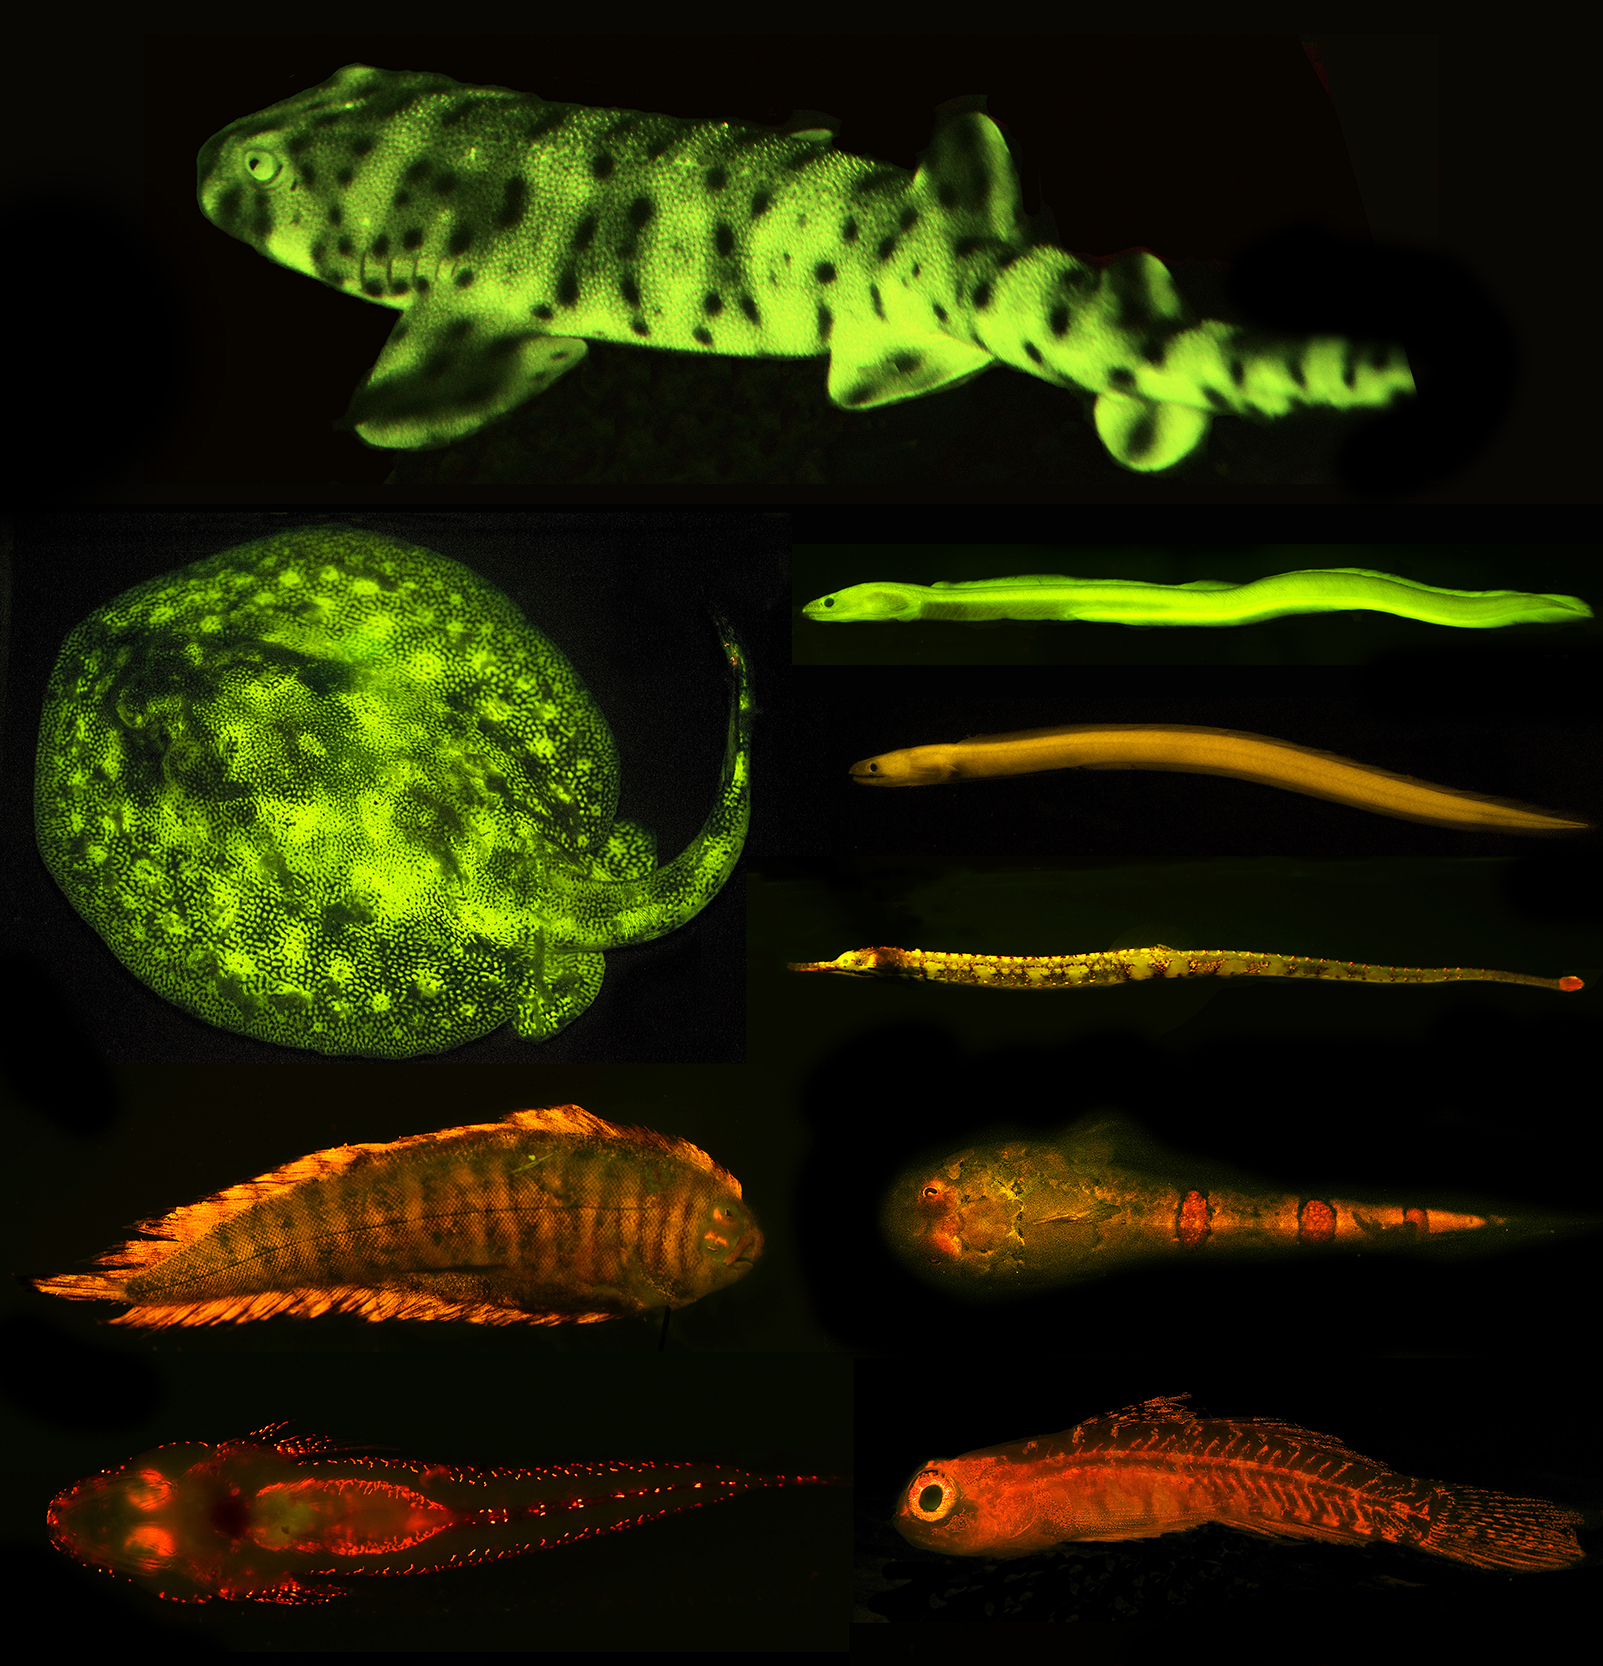 Survey and Discovery of Biofluorescence across Fishes - 17. Sparks, J.S., Schelly, R.C., Smith, W.L., Davis, M.P., Tchernov, D., Pieribone, V., and Gruber, D.F. (2014). The Covert World of Fish Biofluorescence: A Phylogenetically Widespread and Phenotypically Variable Phenomenon. PLOS ONE. 9(1): e83259.Google ScholarOPEN ACCESS